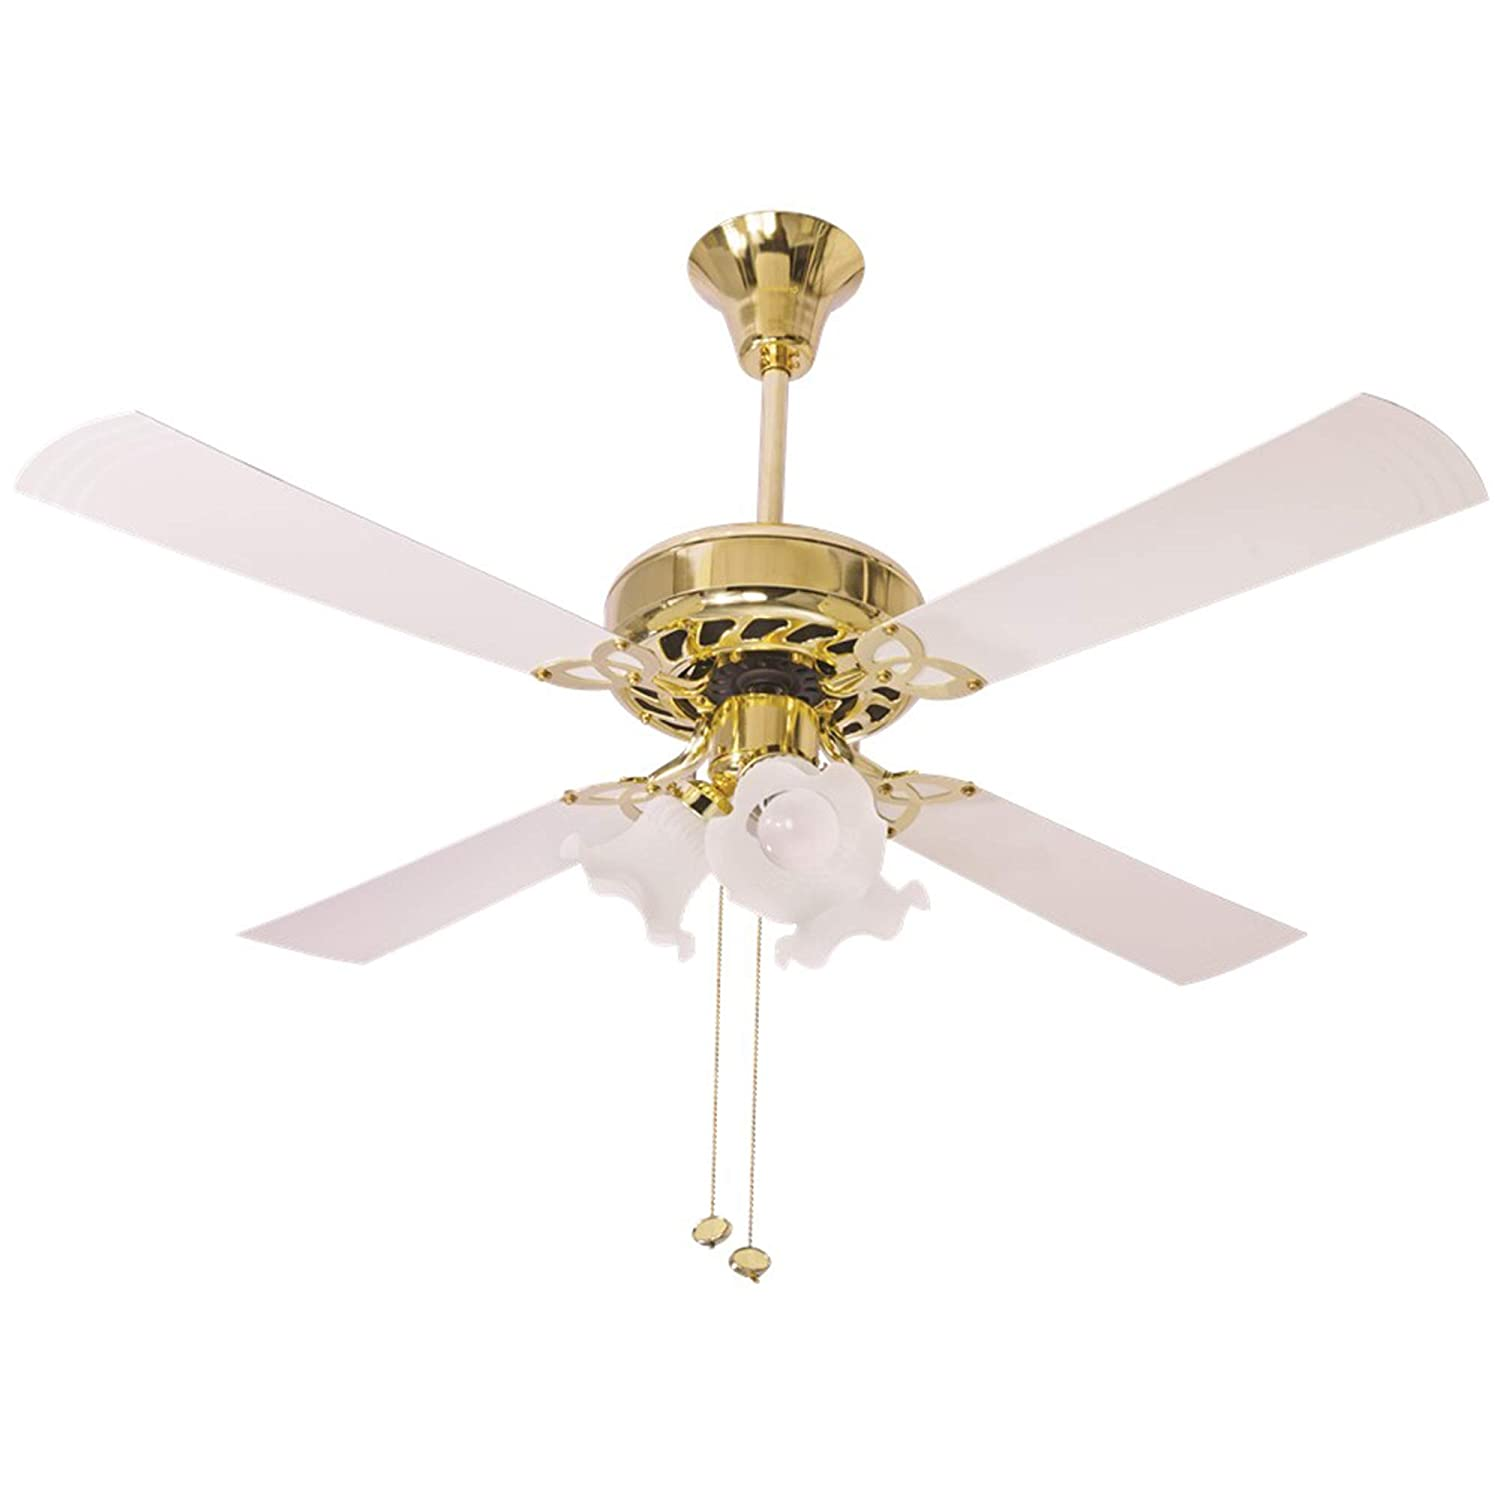 Buy Crompton Uranus Ceiling Fan With Decorative Lights 1200 Mm Ivory Online At Low Prices In India Amazon In